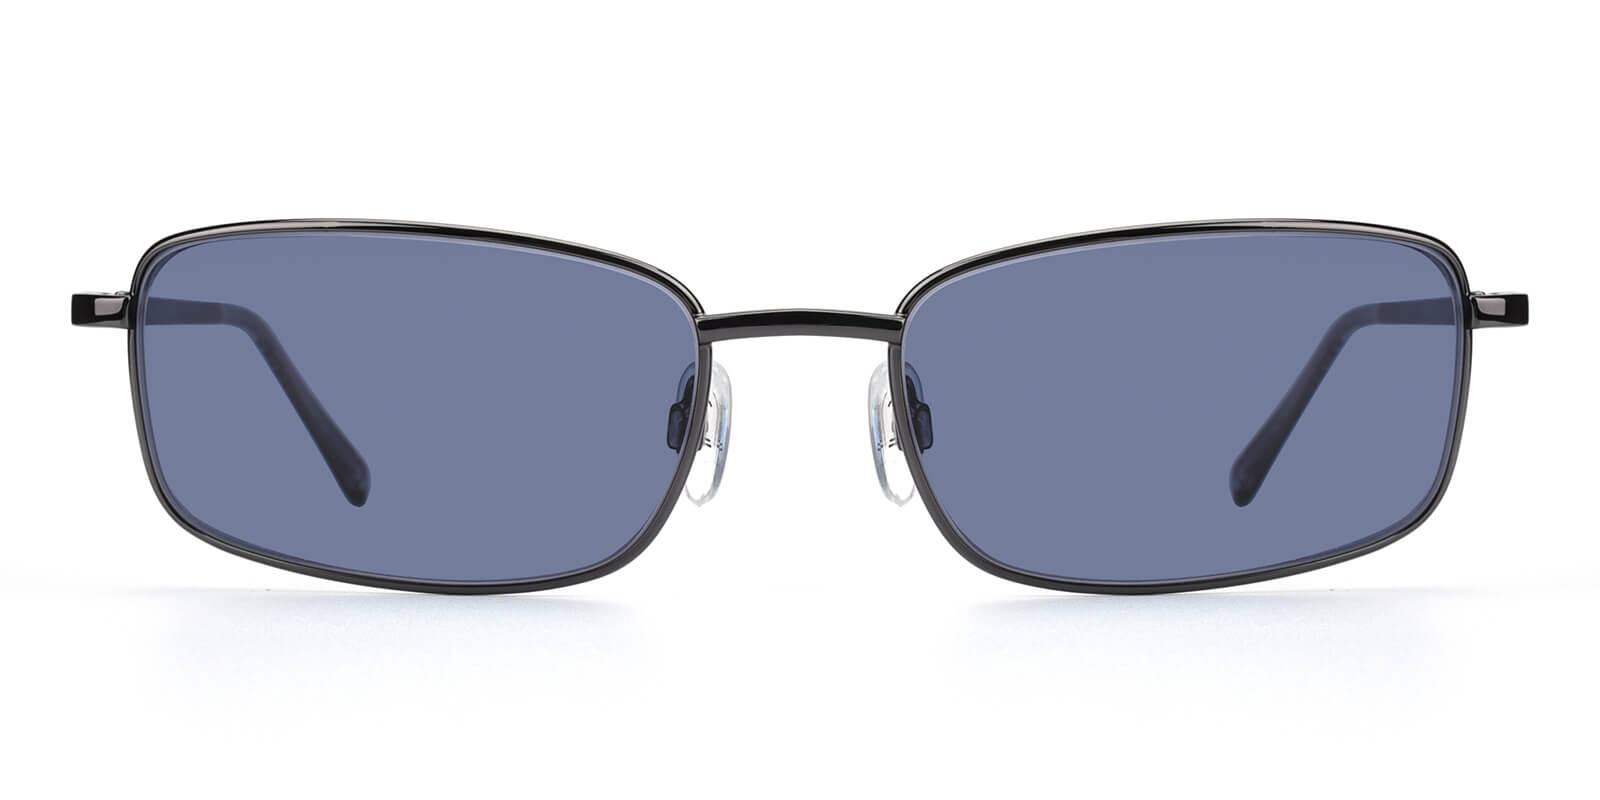 Cheynish-Gun-Rectangle-Metal-Sunglasses-additional2